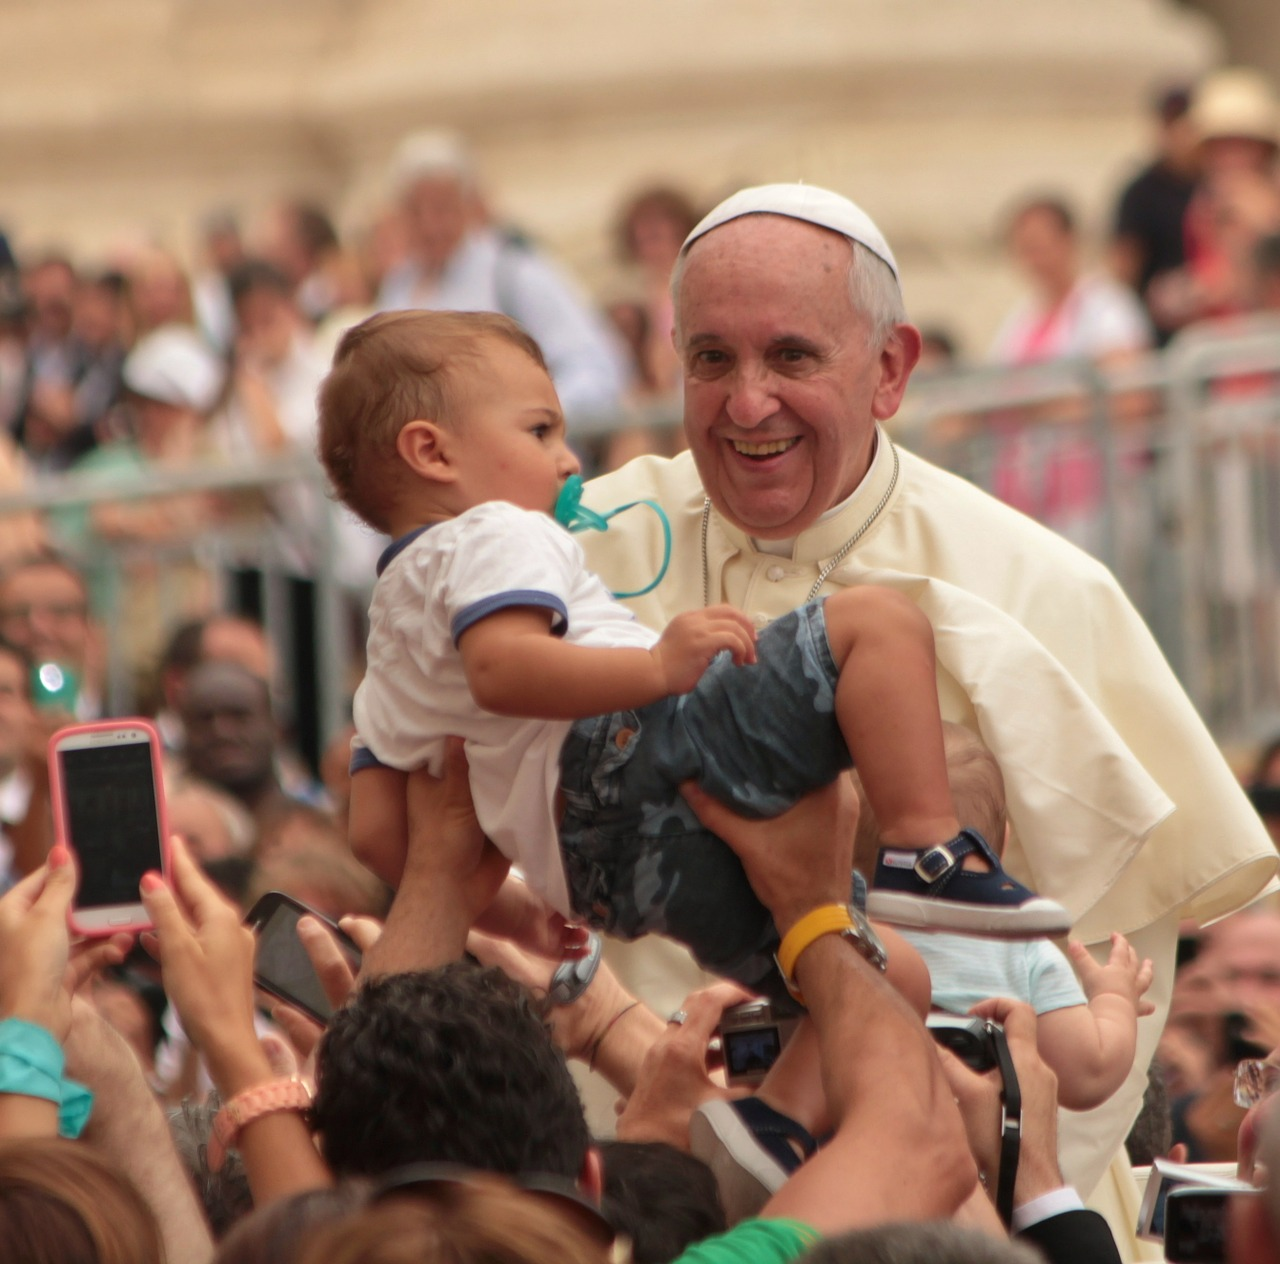 Pope_blessing-of-children-604358_1280.jpg